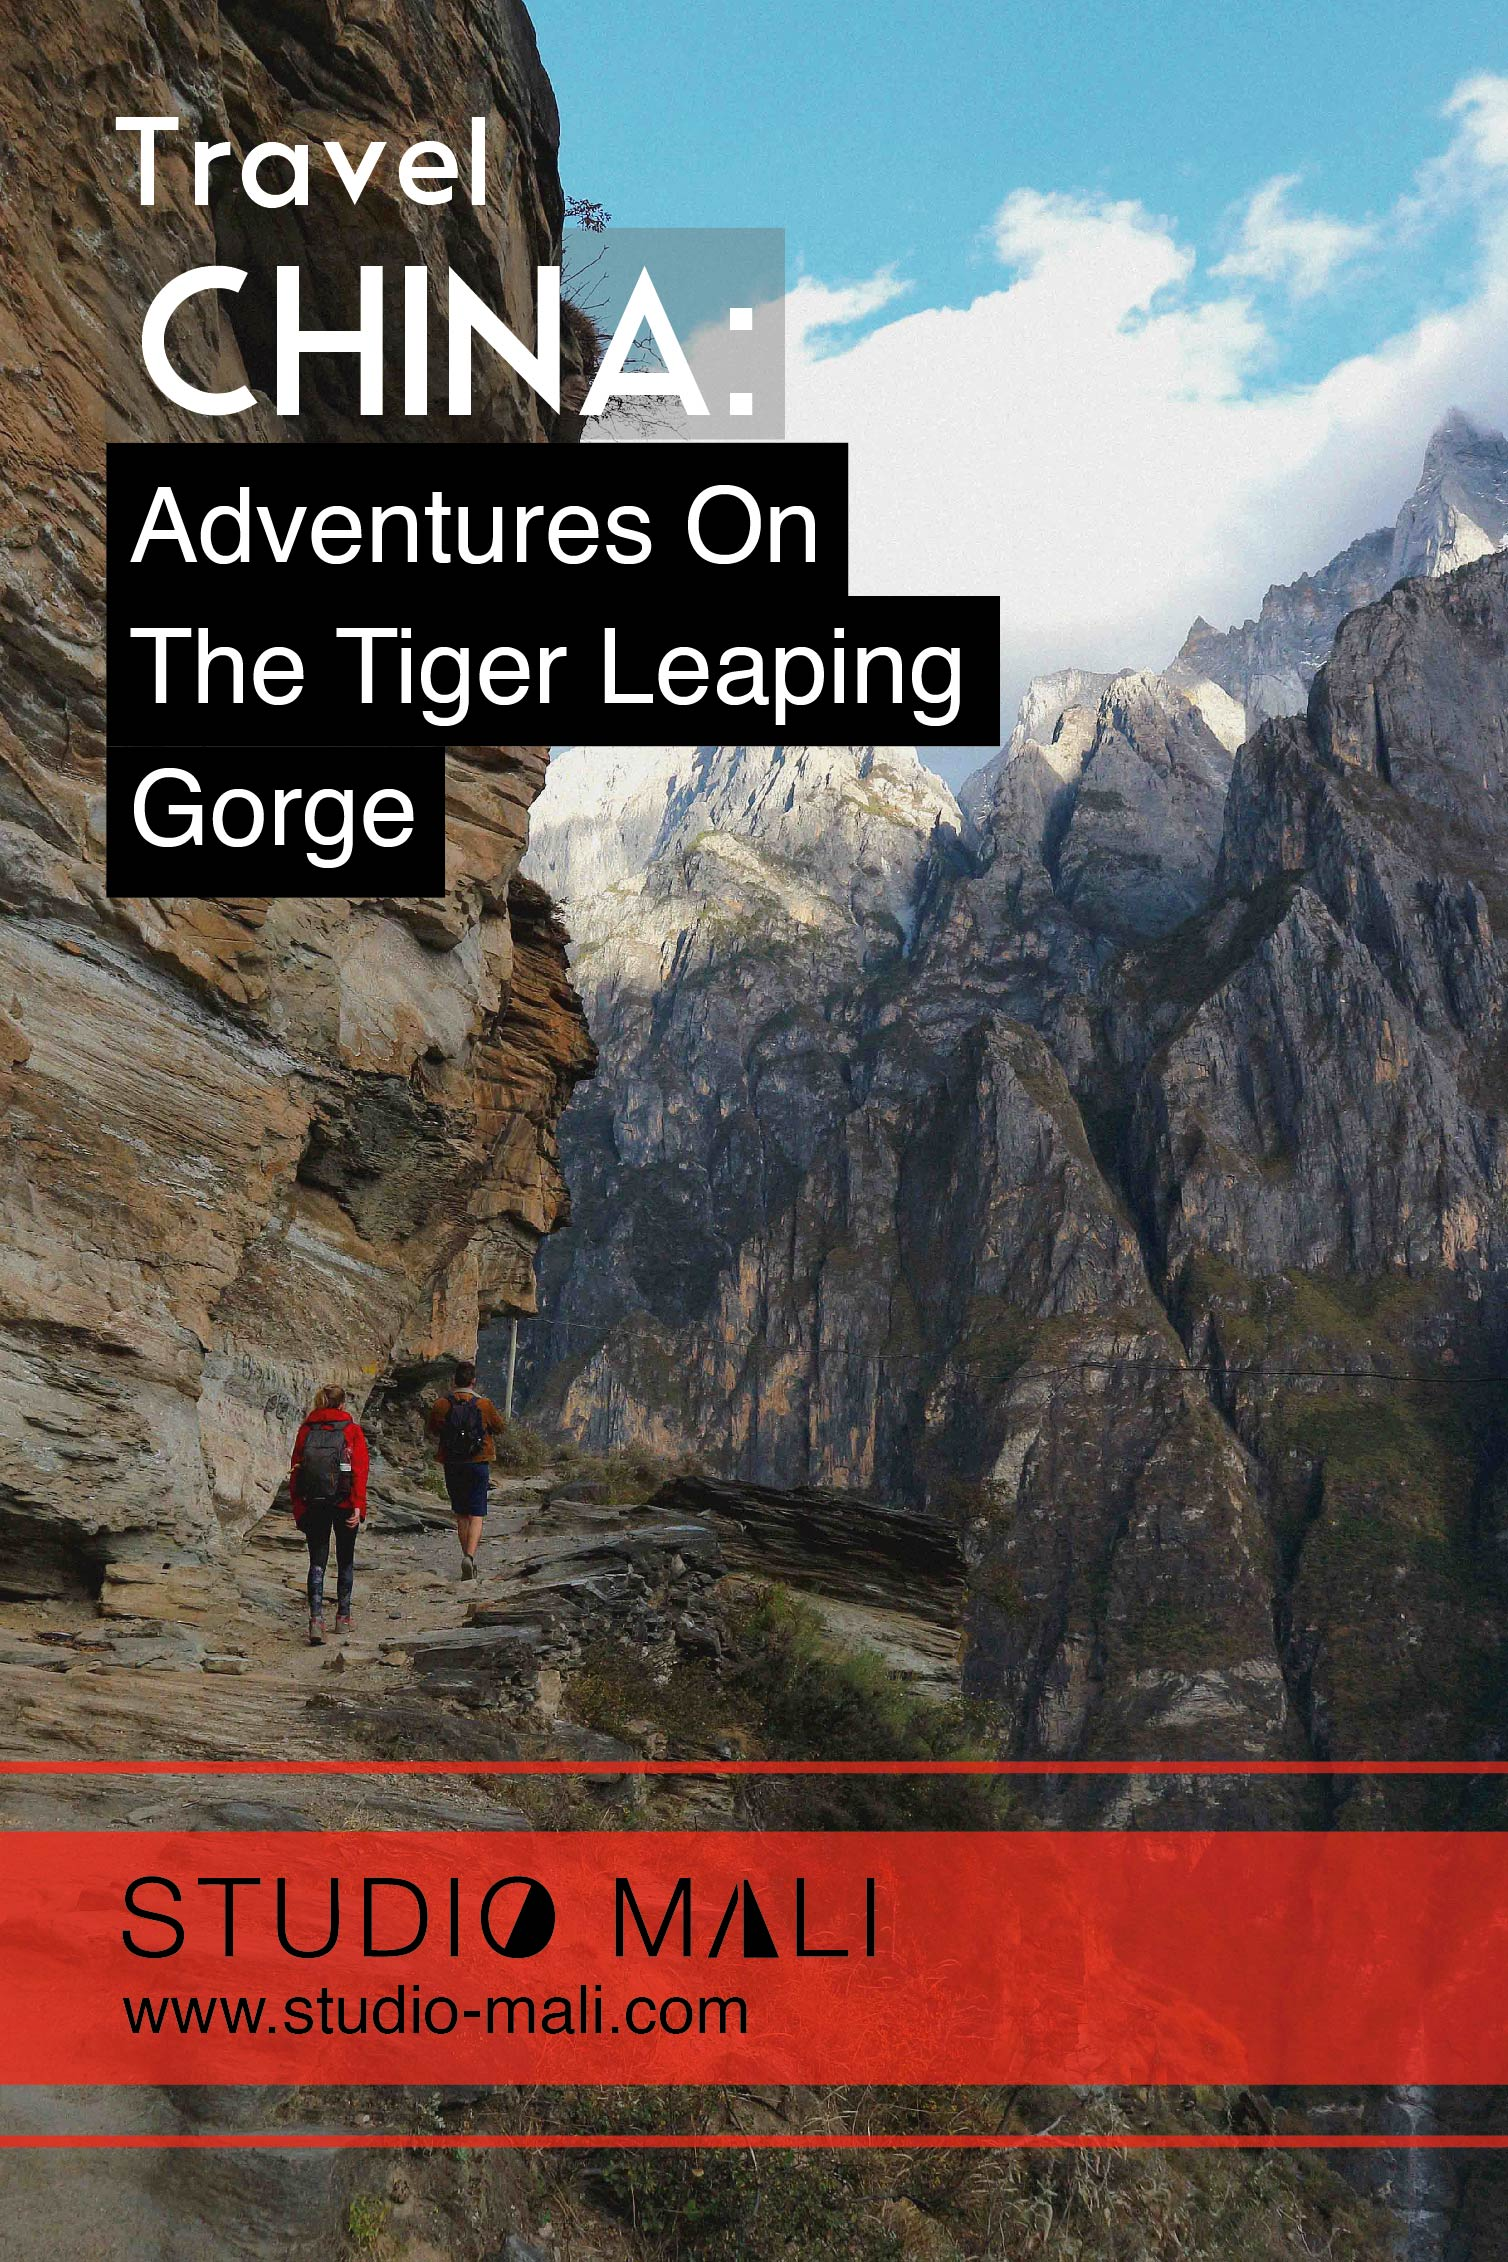 China - Adventures On The Tiger Leaping Gorge, by Studio Mali.jpg